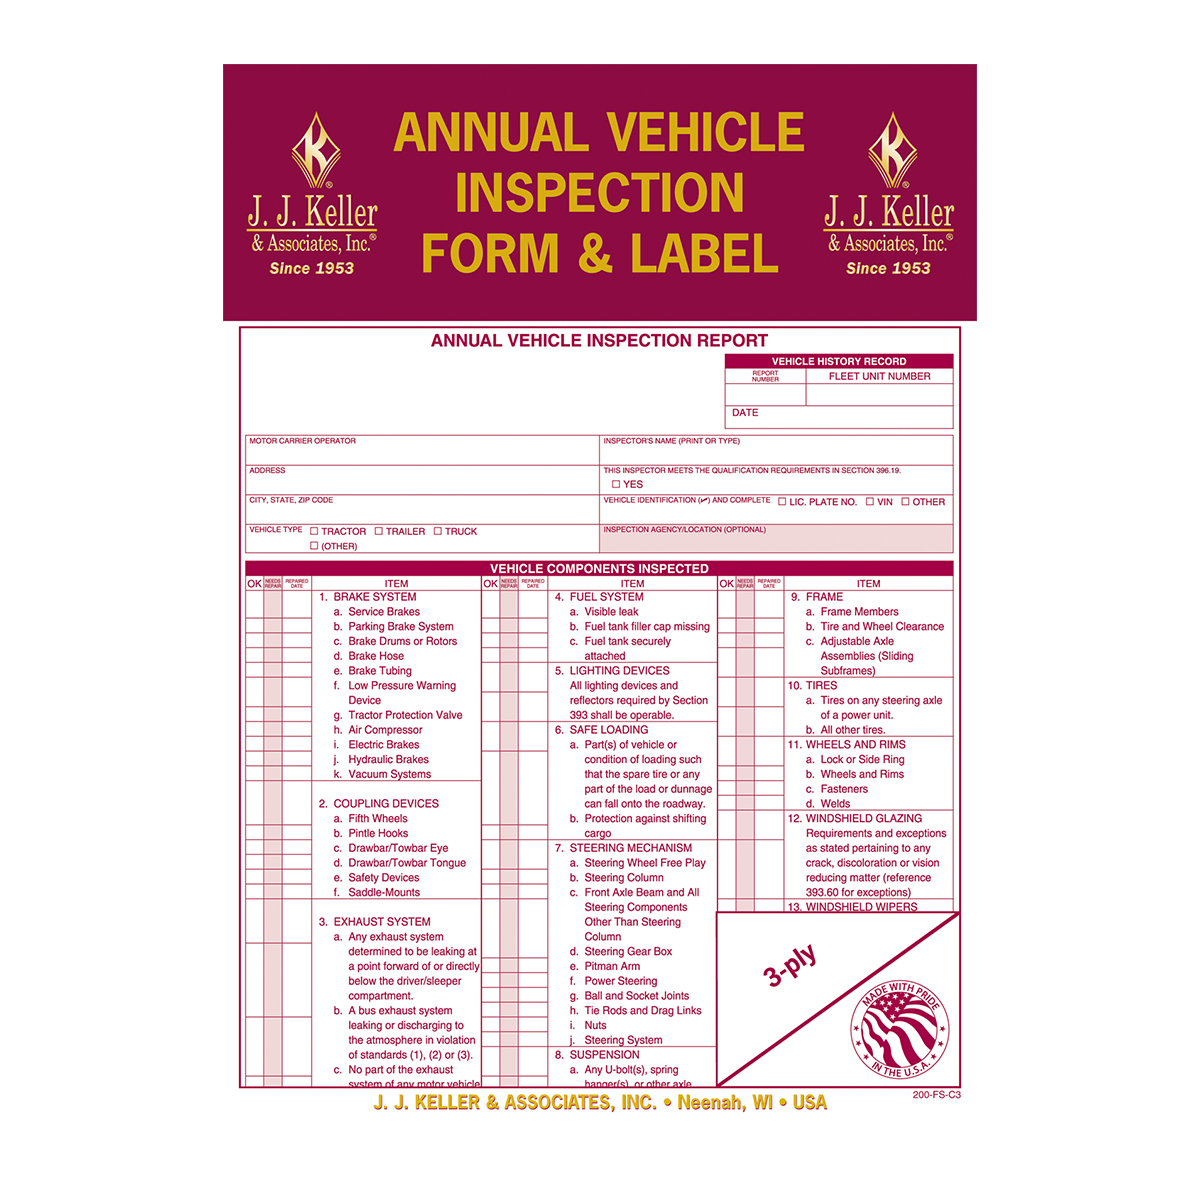 99909 Annual Vehicle Inspection Report with Labels